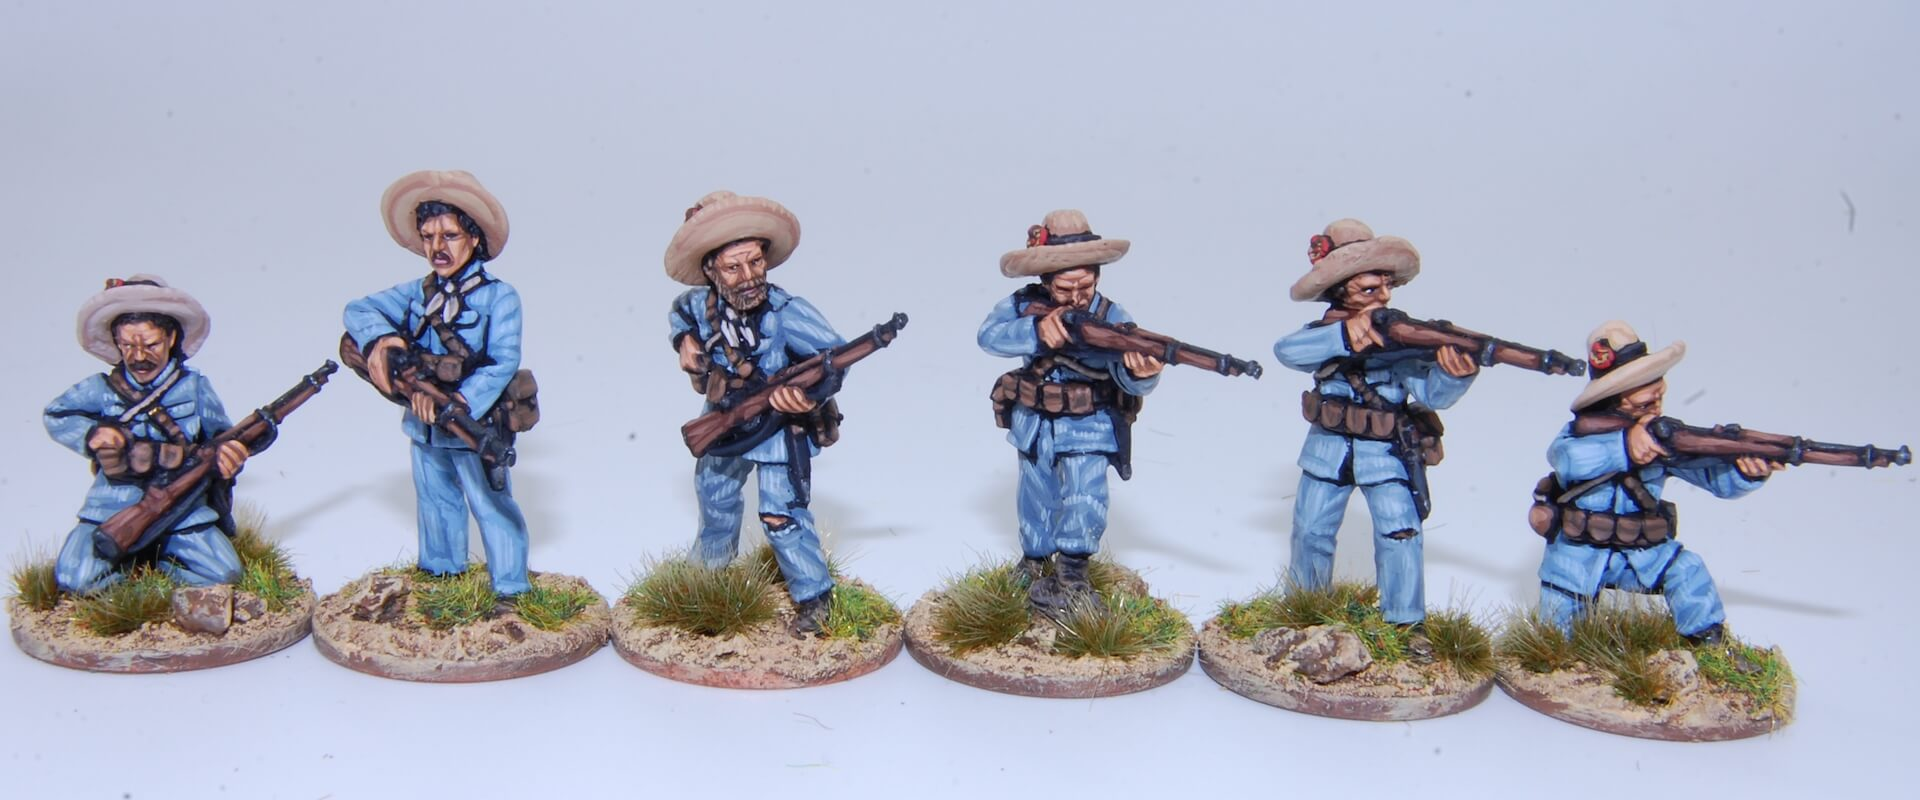 Rules to wargaming Philipinnes War - 1898 Miniaturas